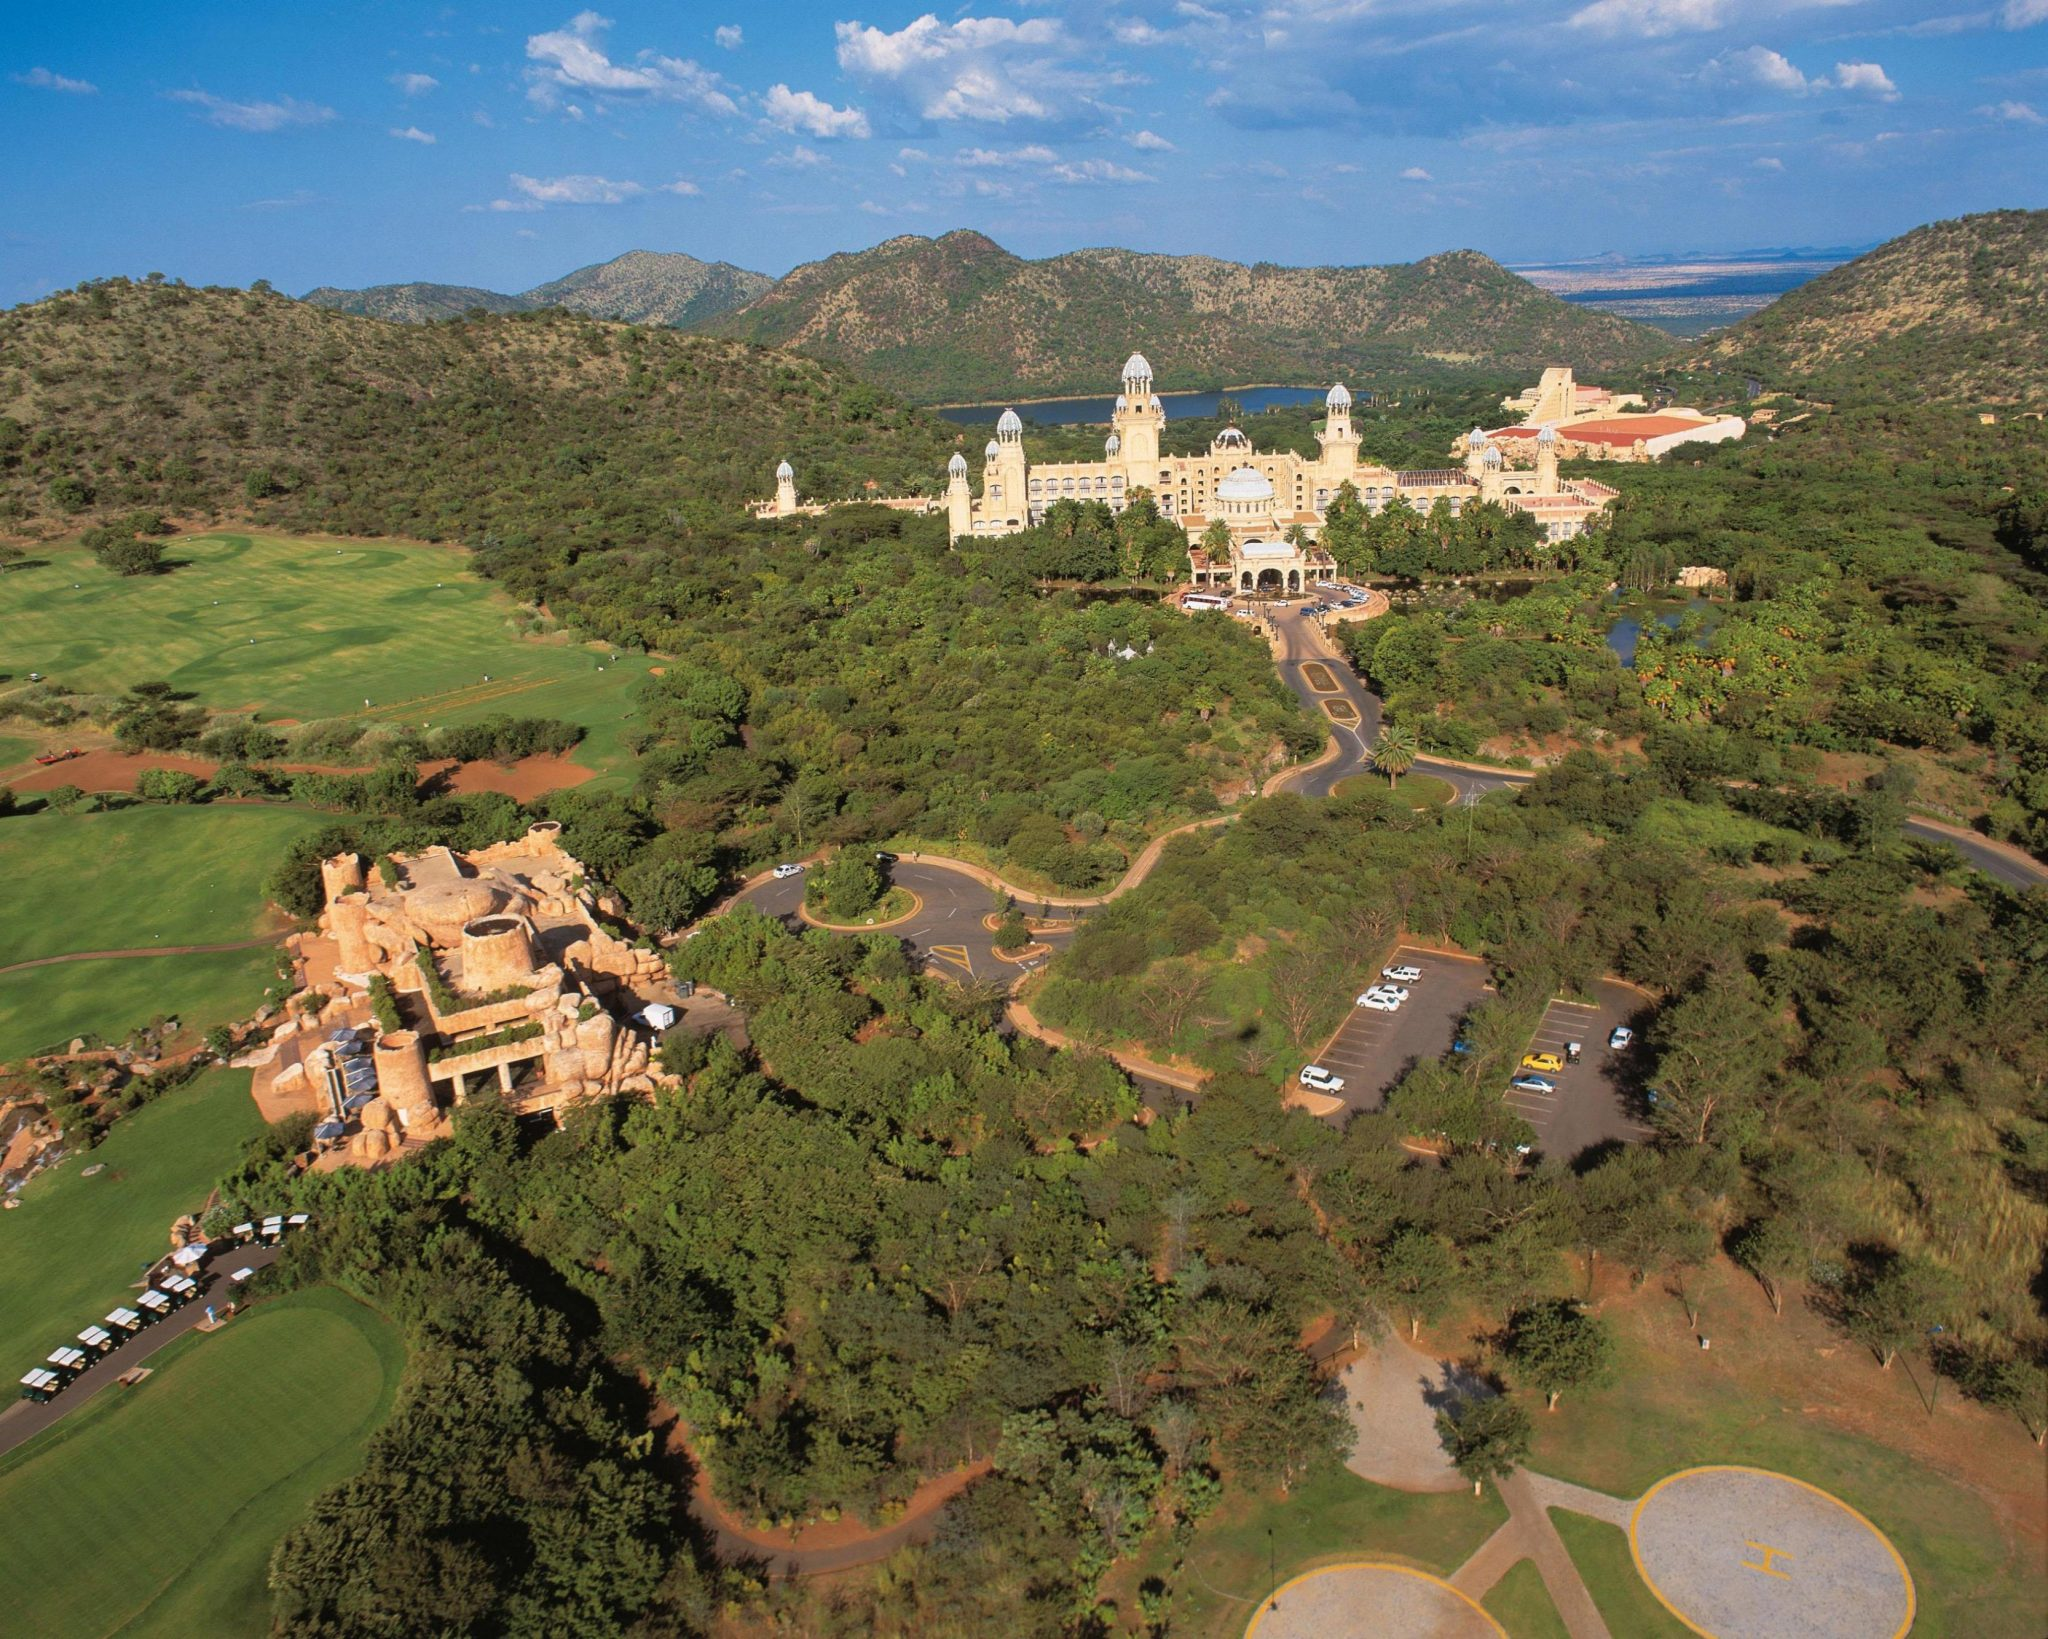 Sun City's R1bn refurb set to restore resort as firm favourite